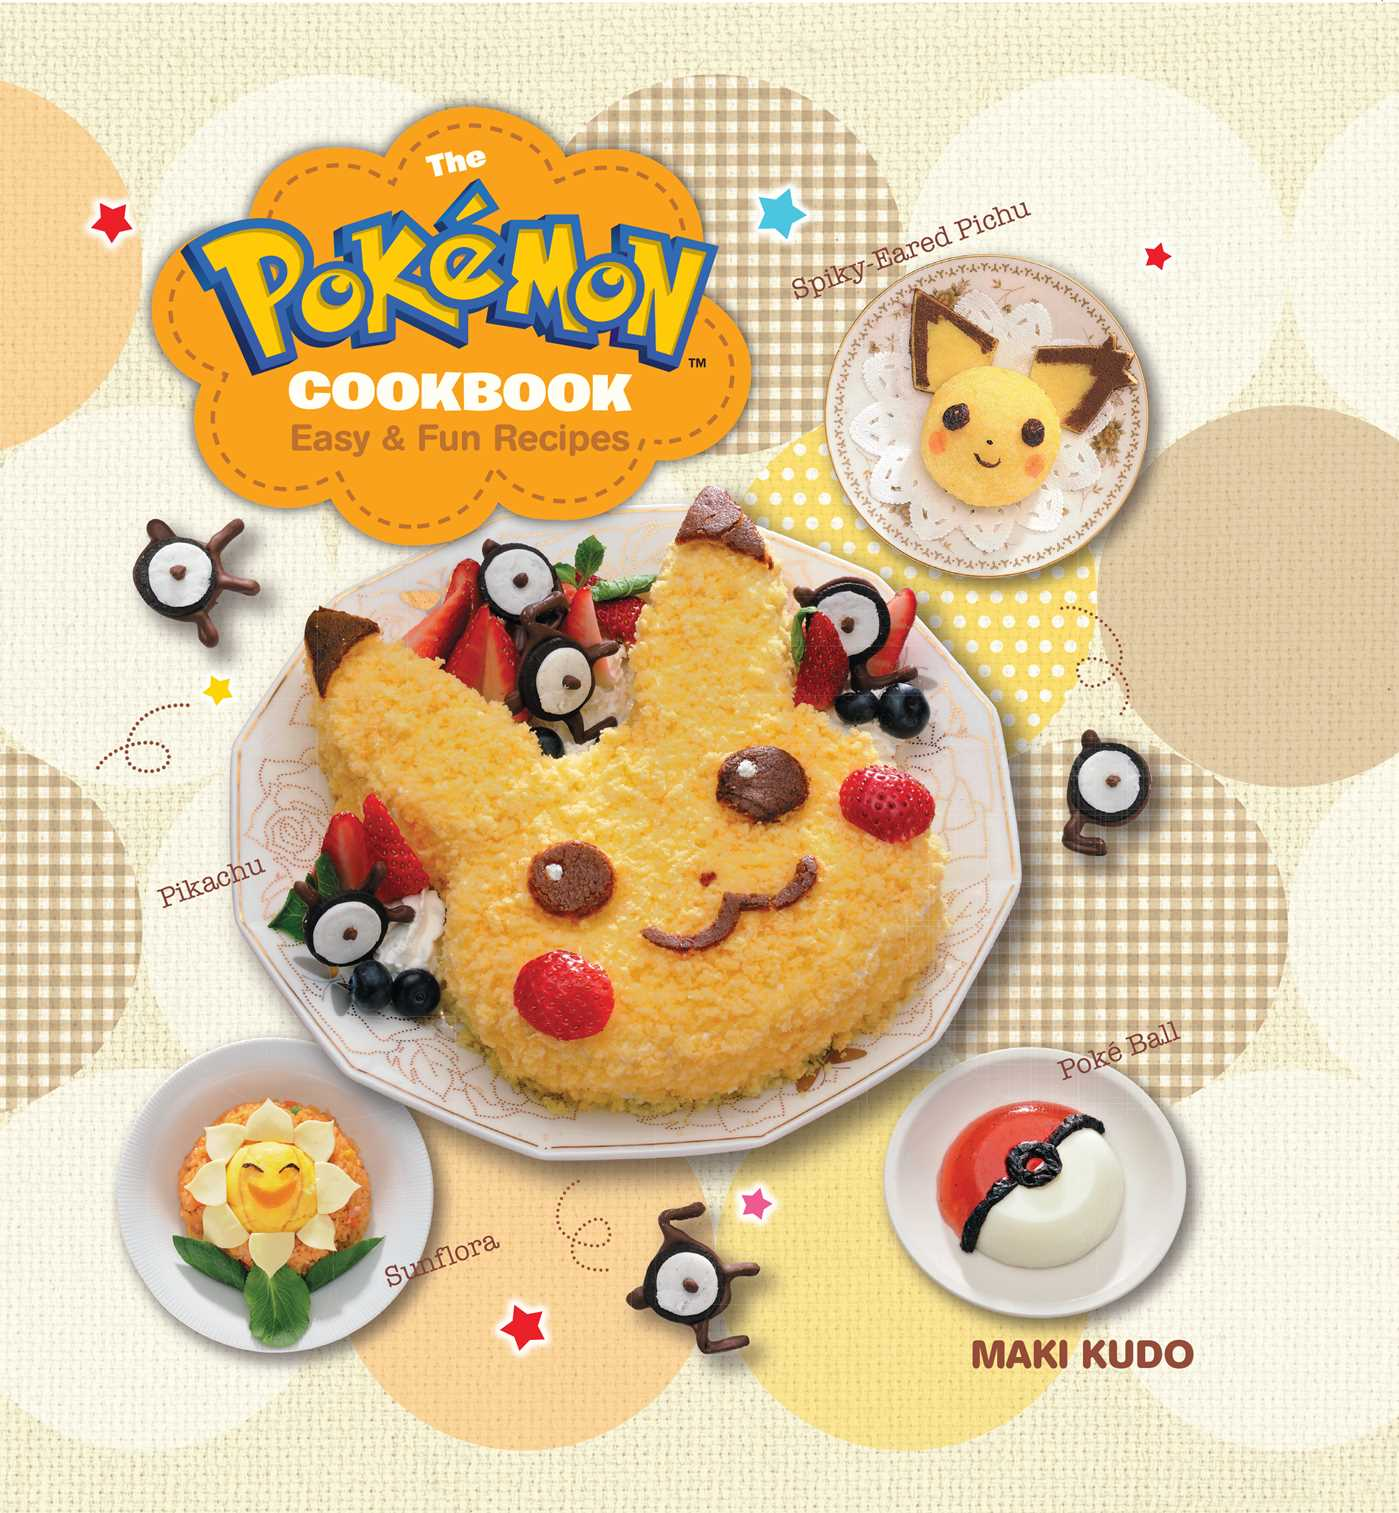 The Pokémon Cookbook: Easy & Fun Recipes Review